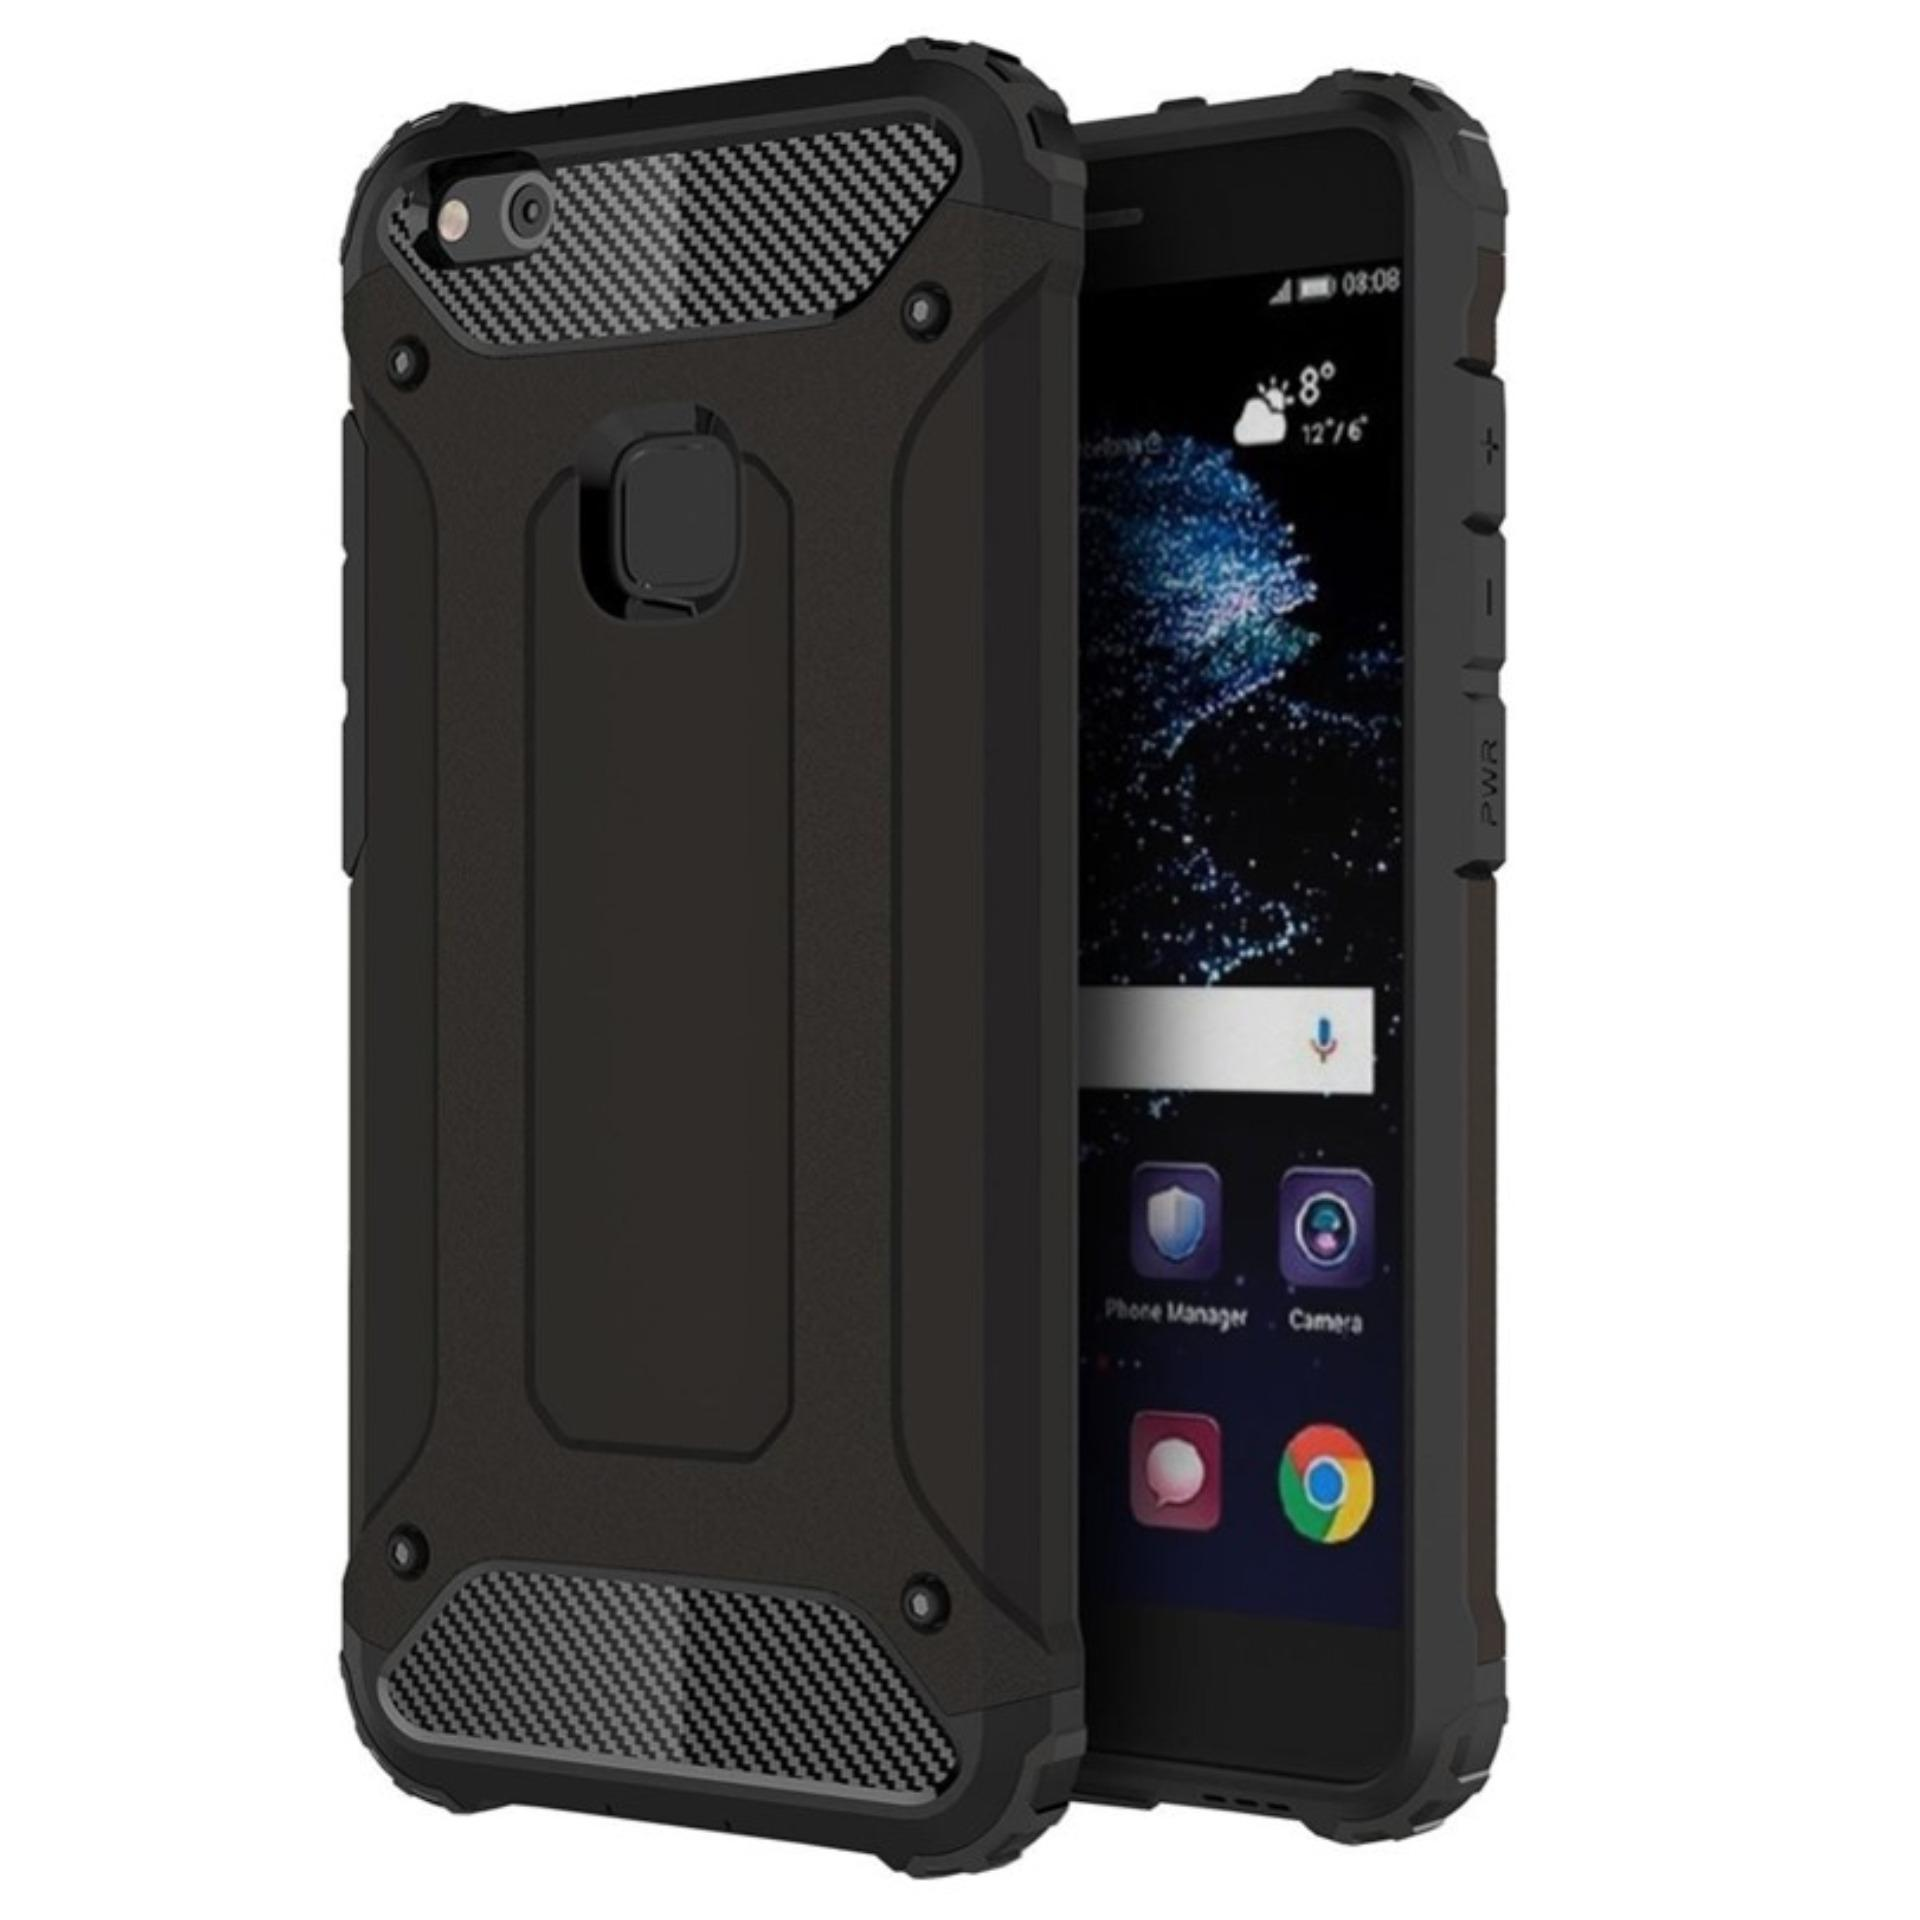 Case Hard Cover Robot Shockproof Armor For VIVO Y83 - Black